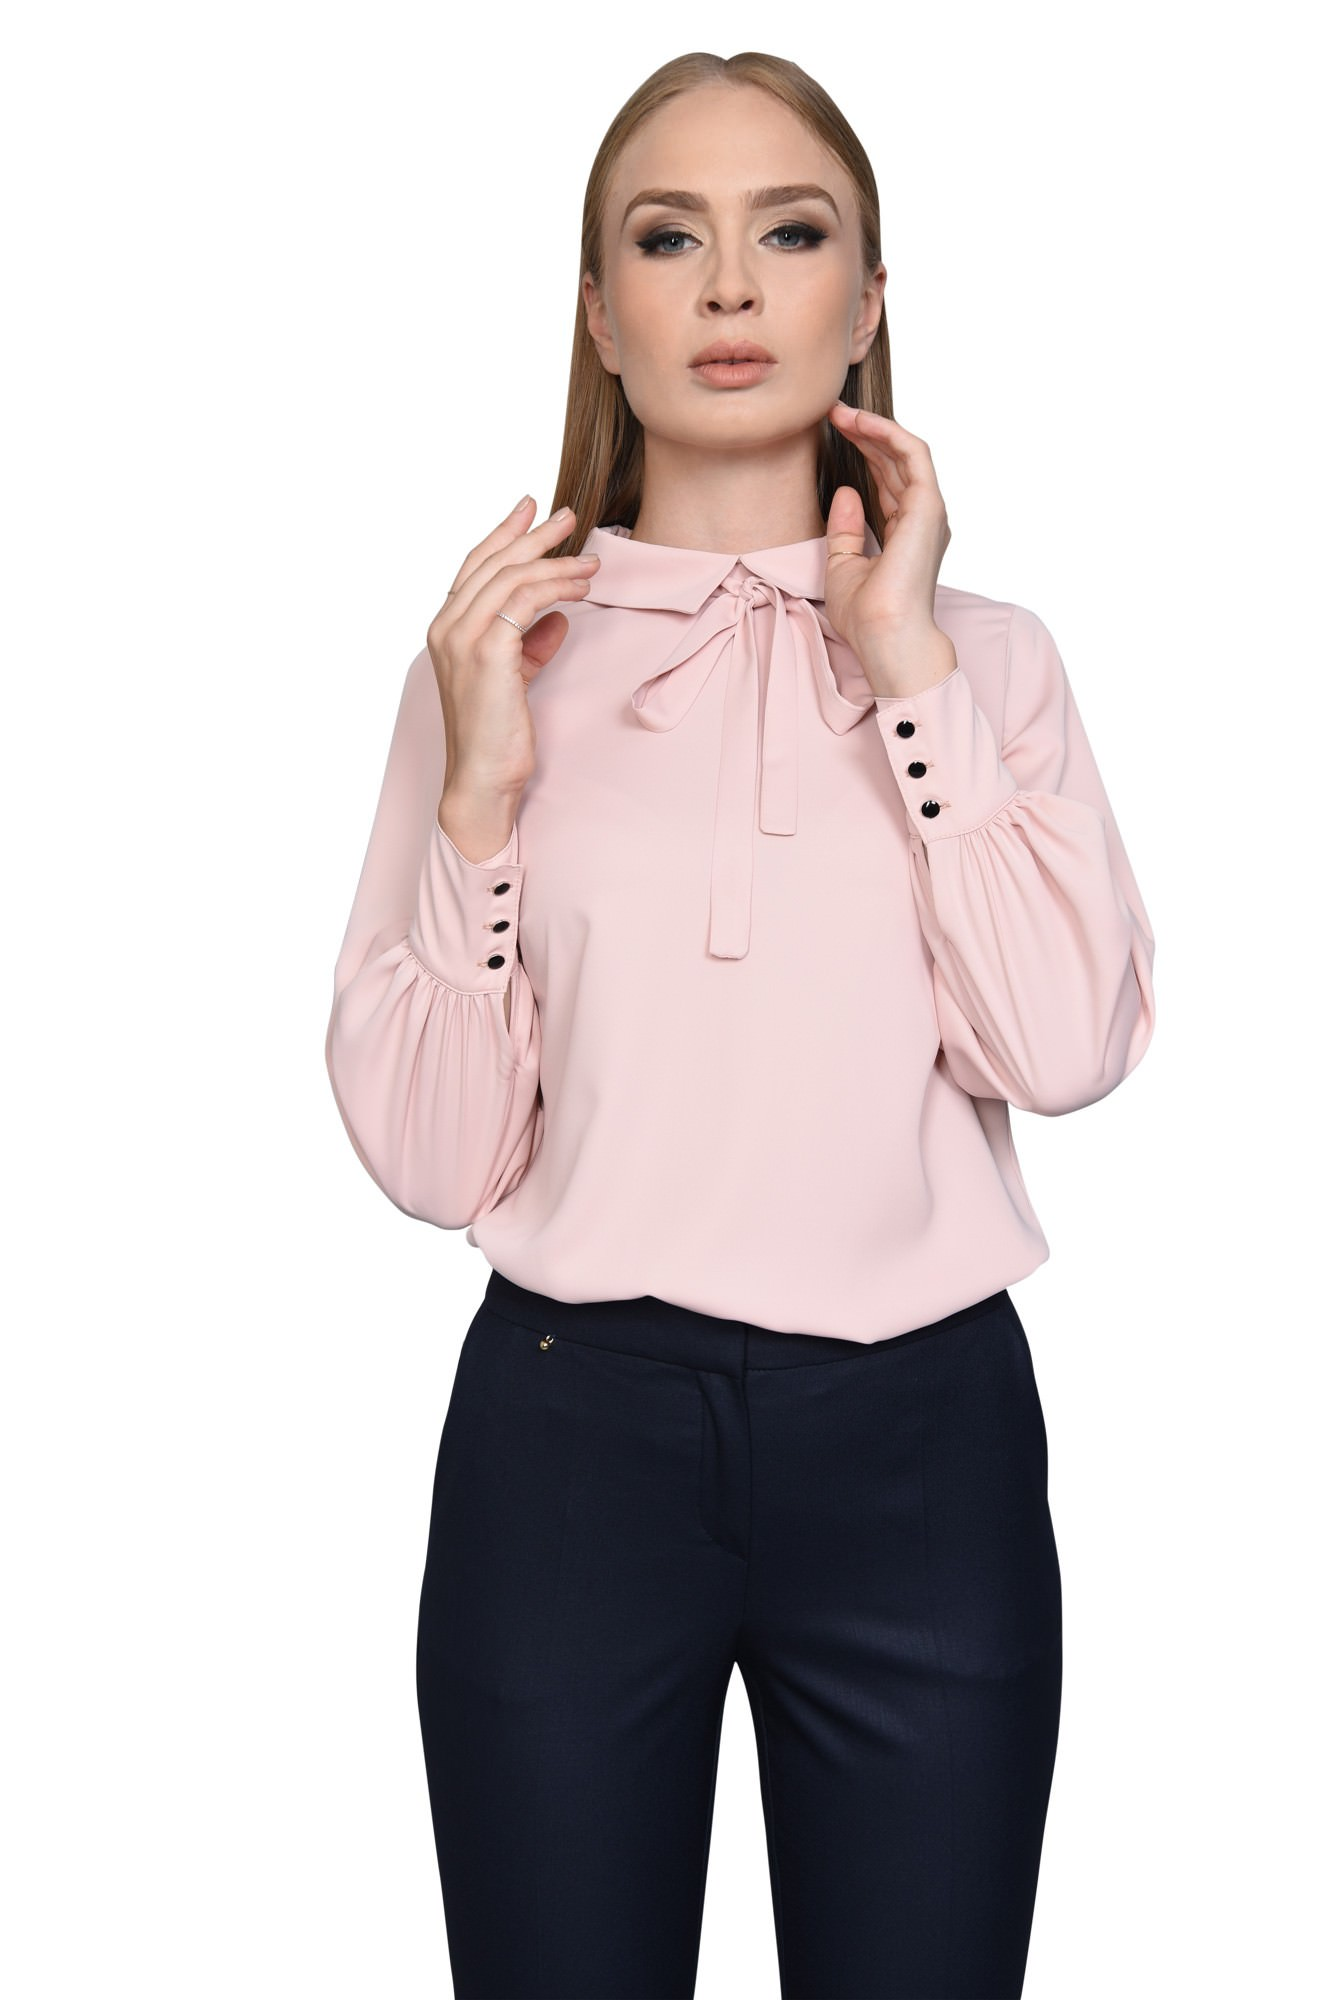 2 - BLUZA OFFICE BL 280-ROZ